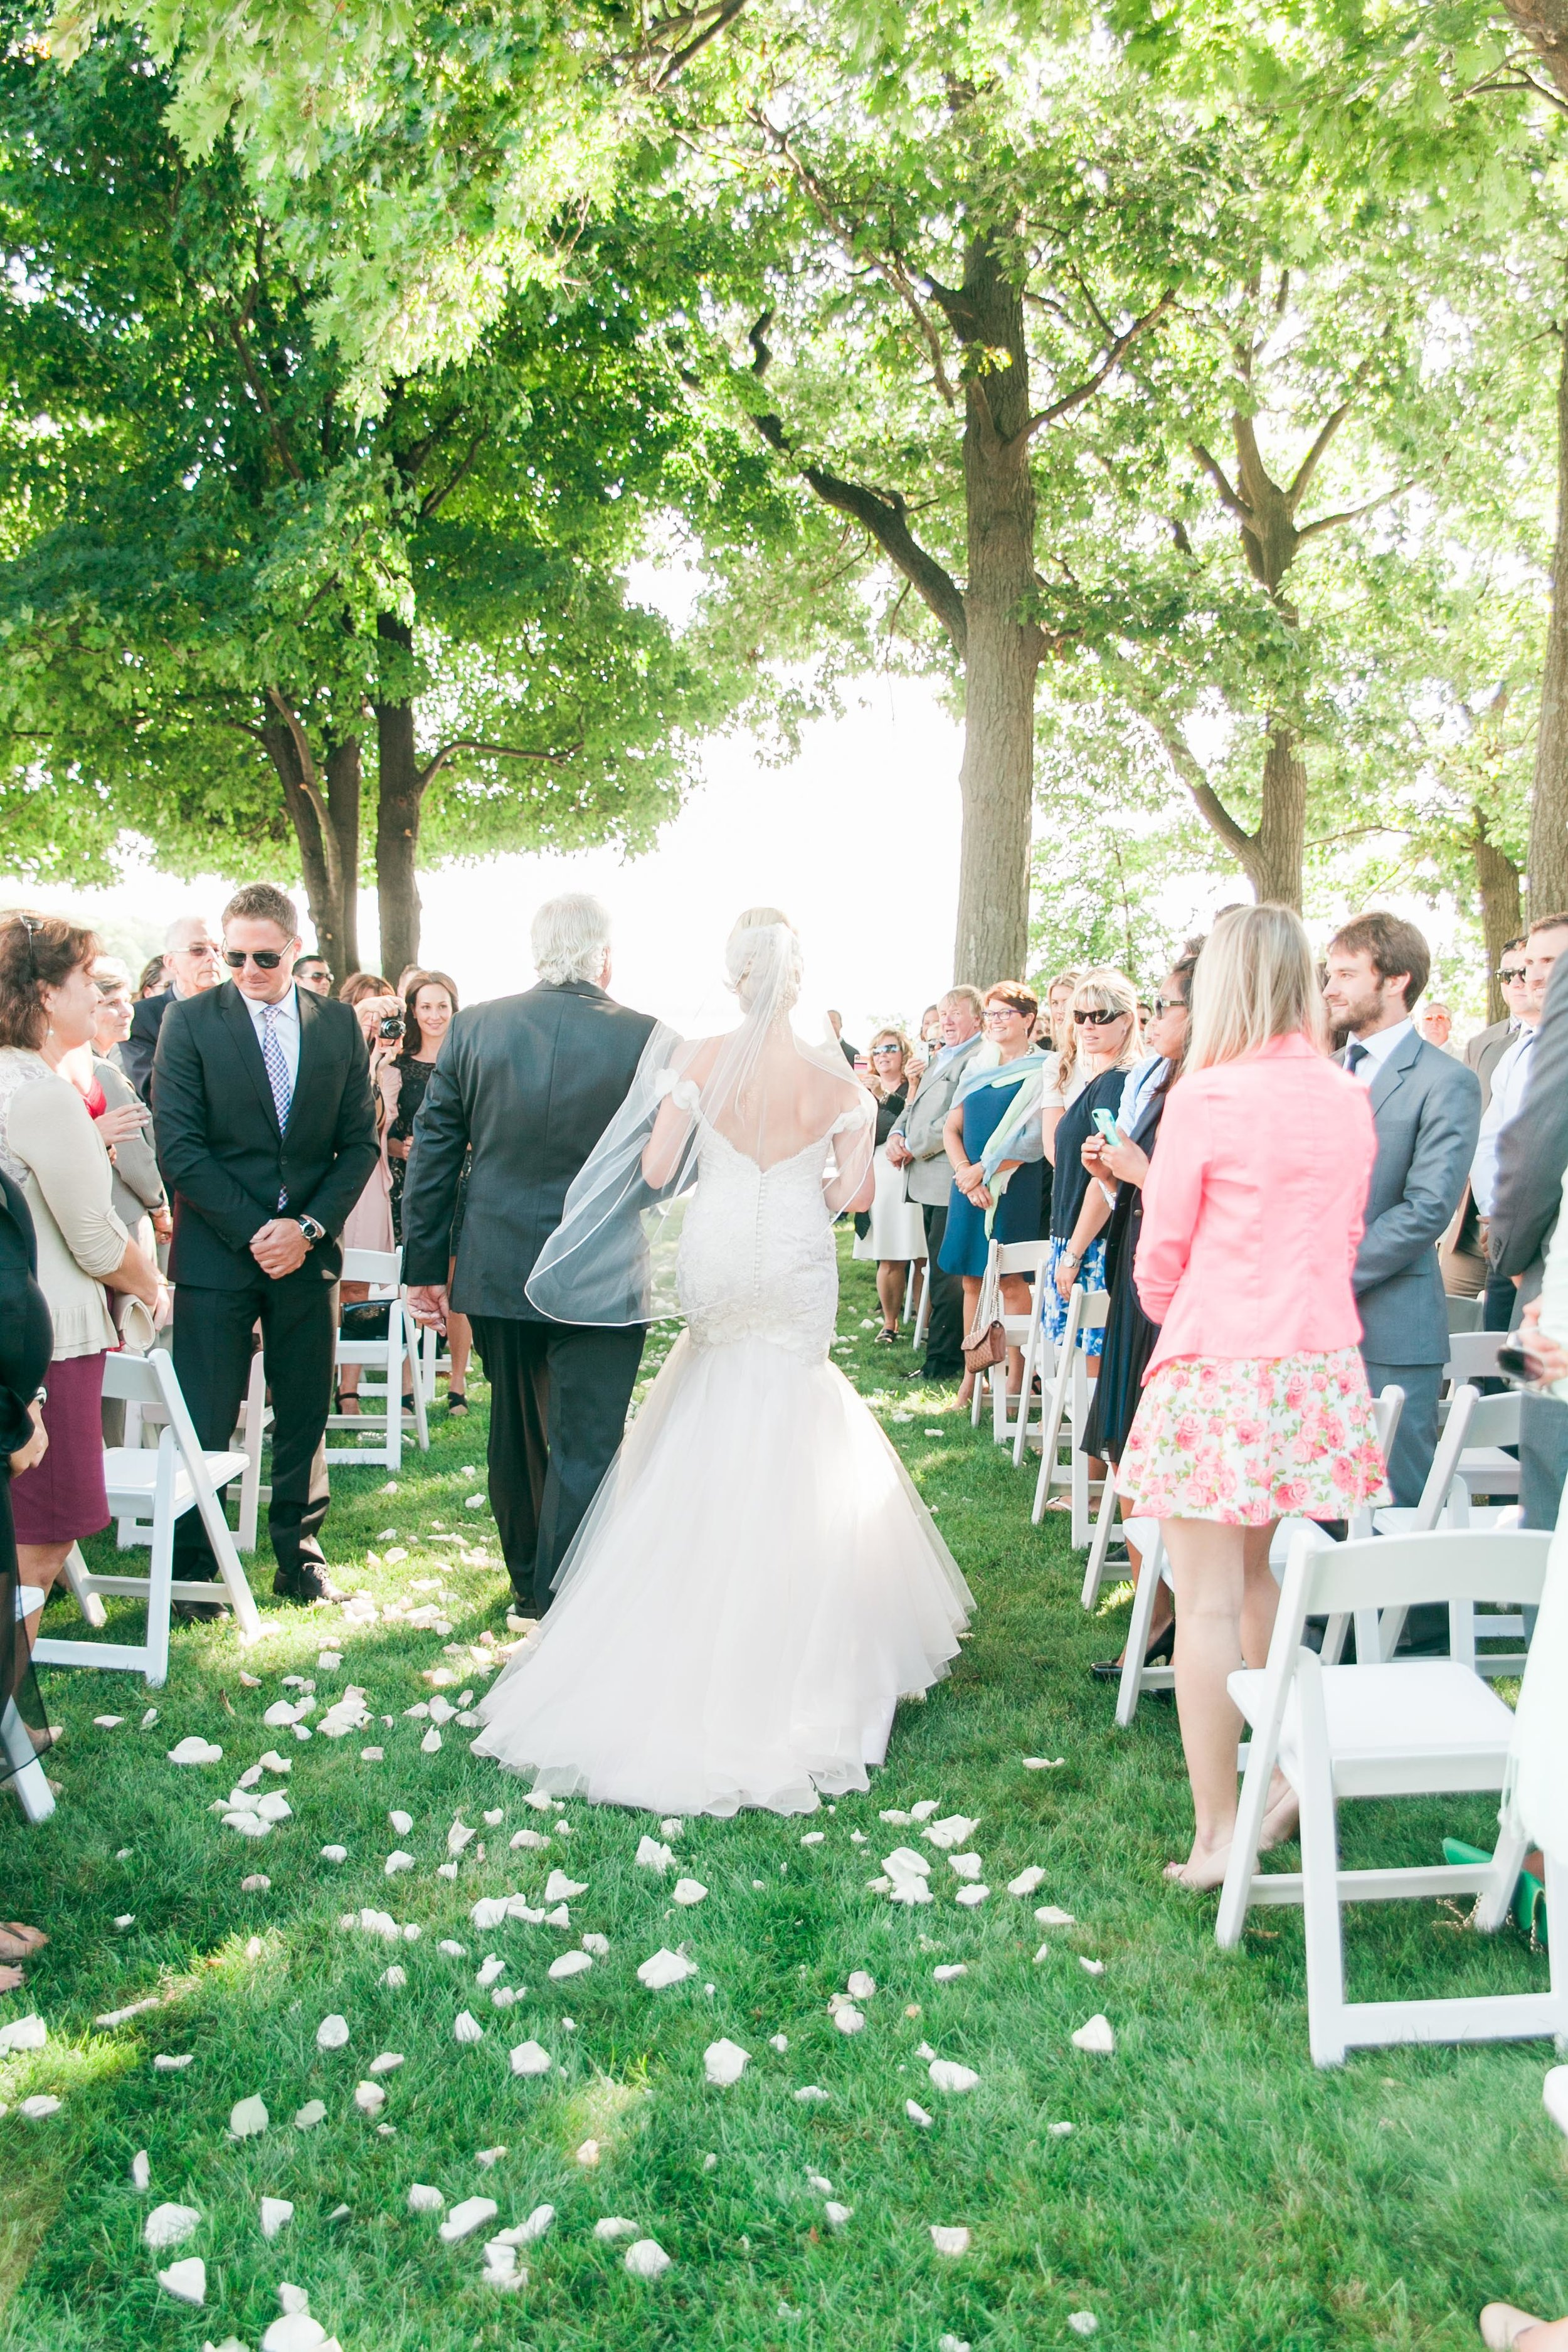 Bride walking down aisle at outdoor ceremony